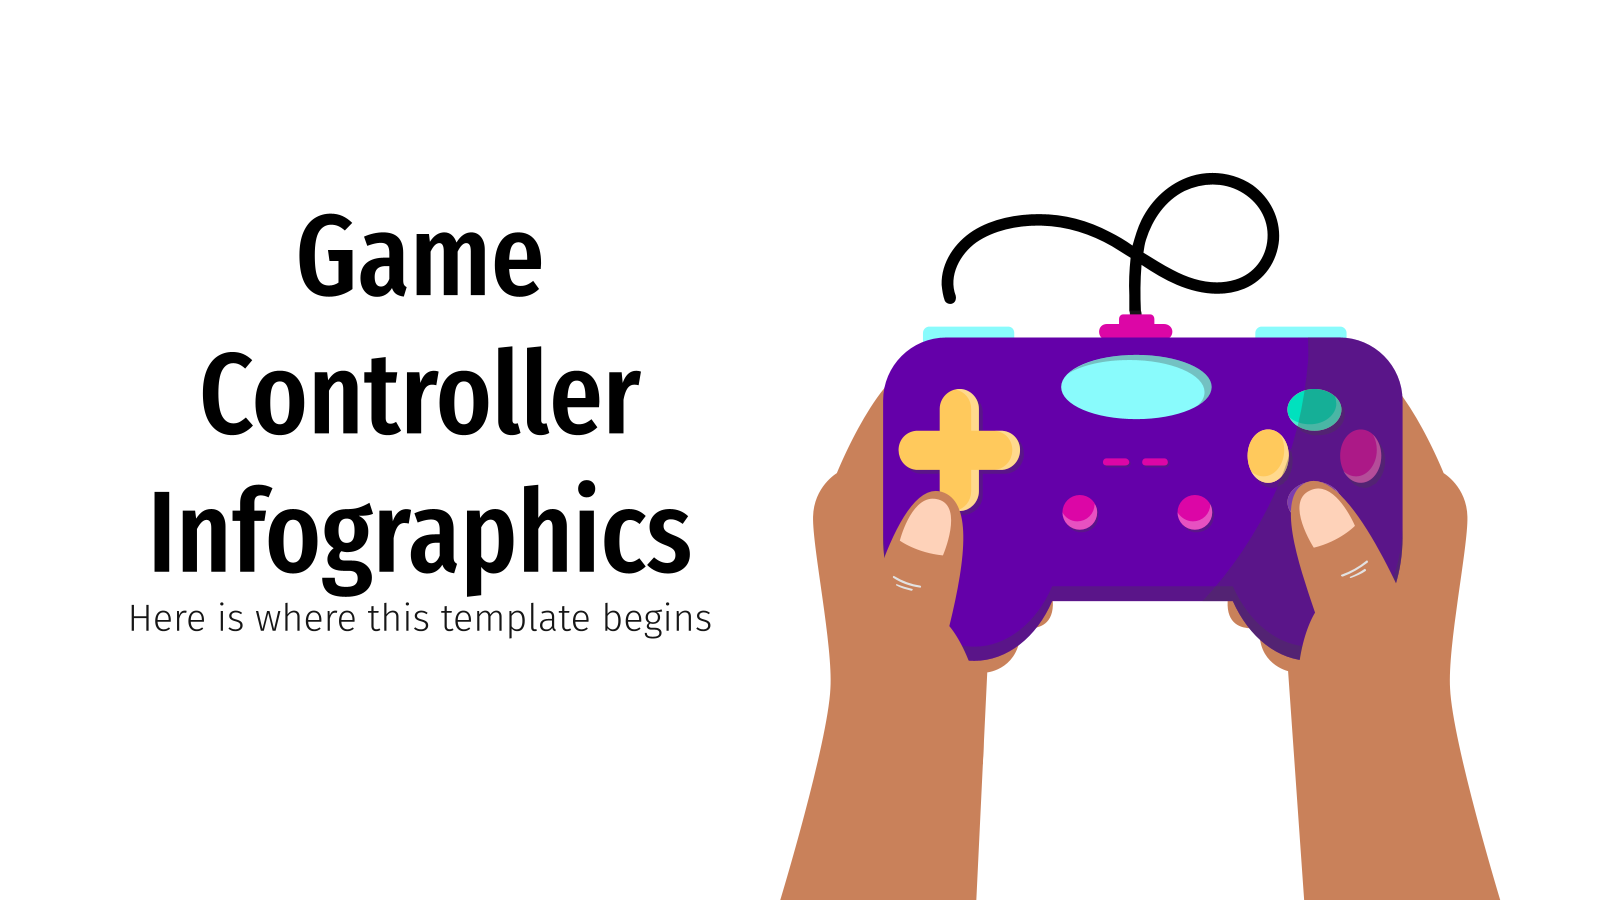 Game Controller Infographics presentation template